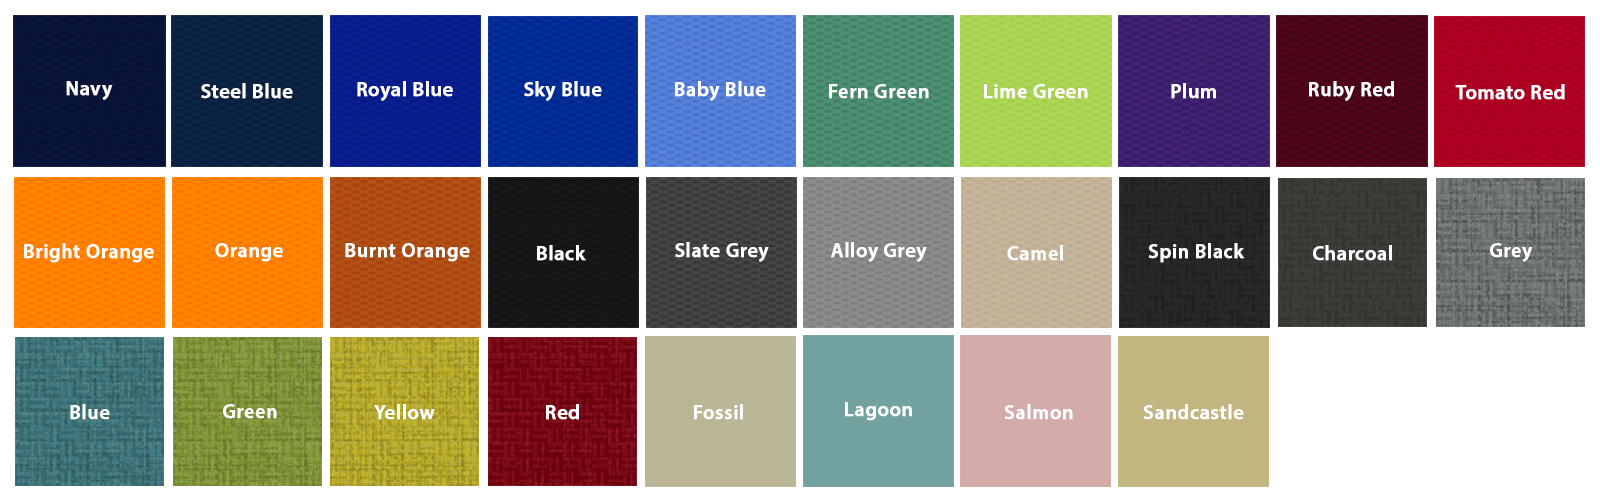 28-colors-swatch-image2.jpg